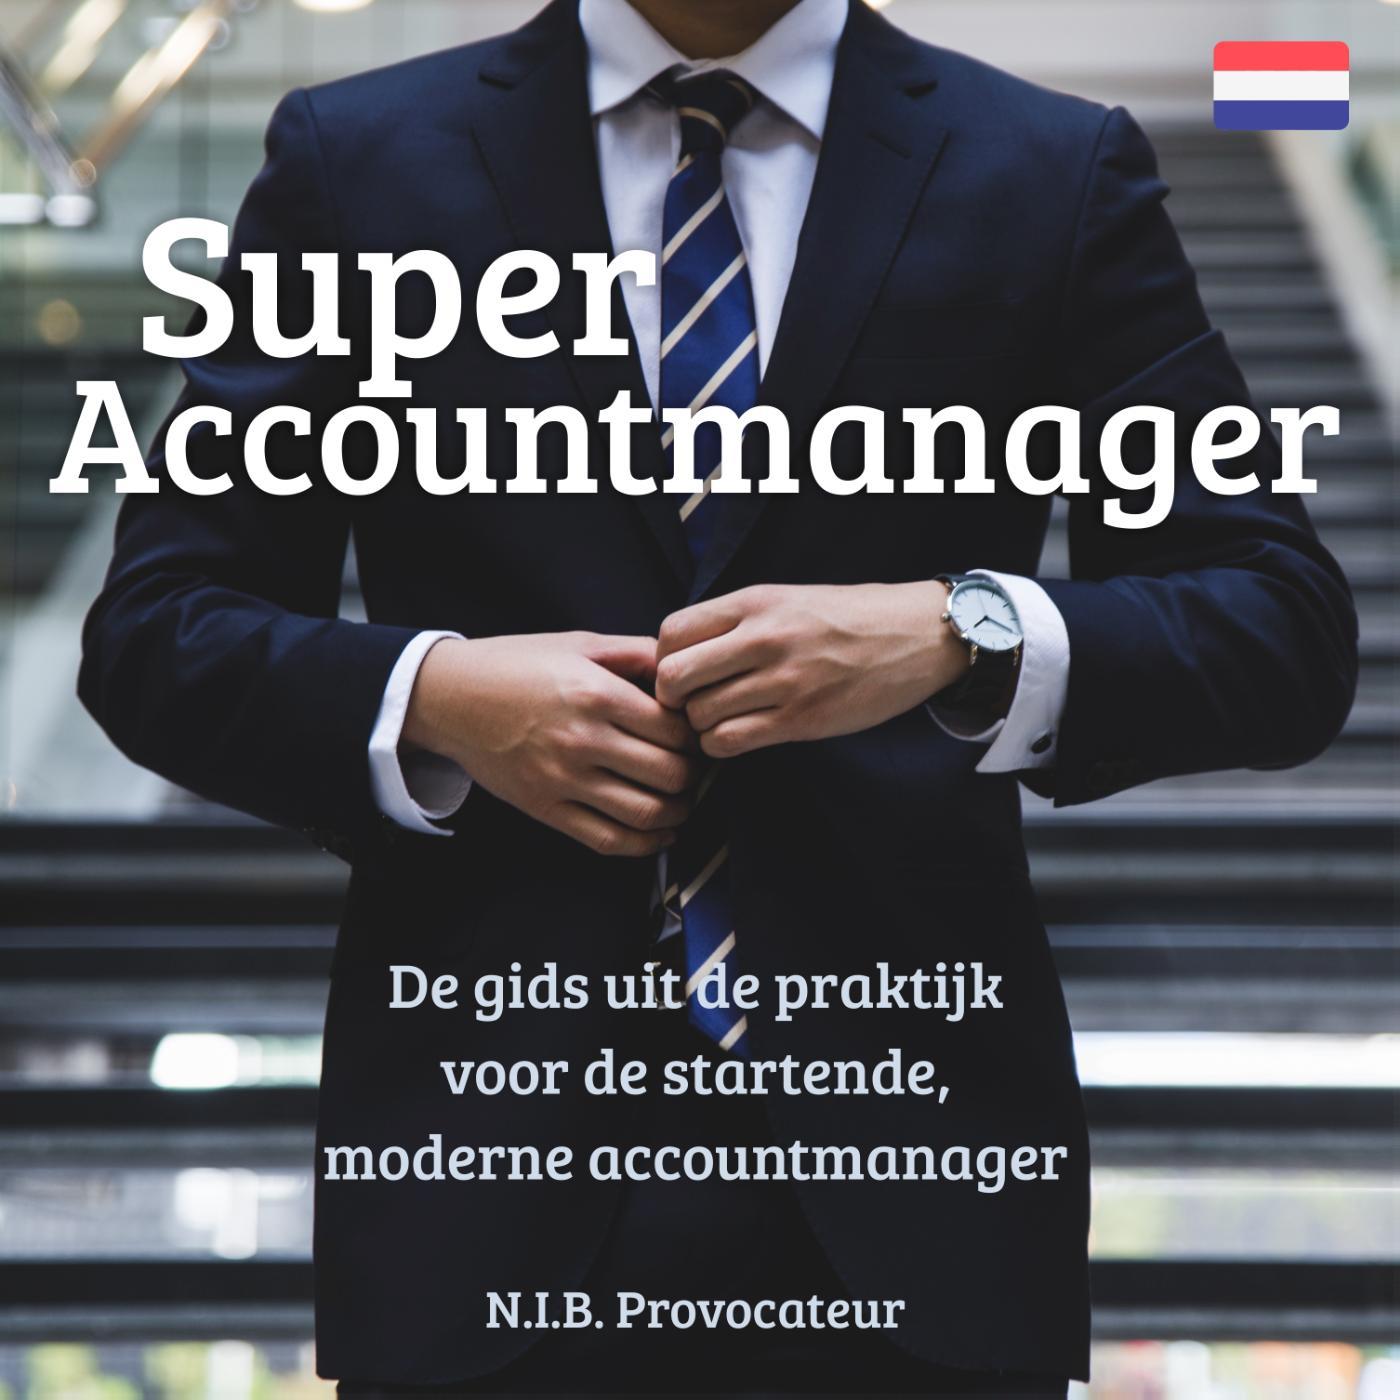 Super Accountmanager (NL)